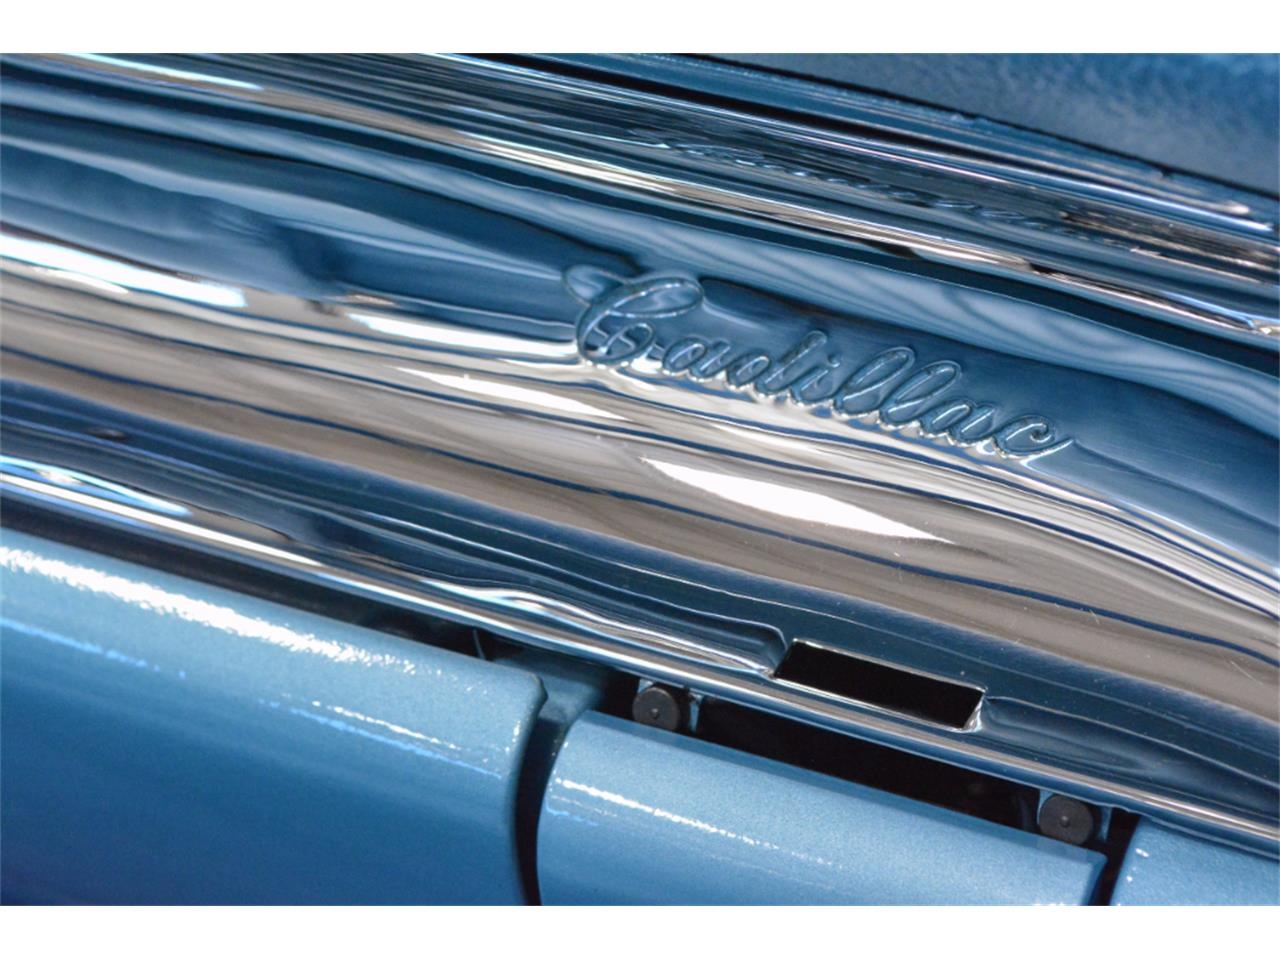 Large Picture of Classic '57 Eldorado located in Ohio Auction Vehicle Offered by John Kufleitner's Galleria - LKLZ